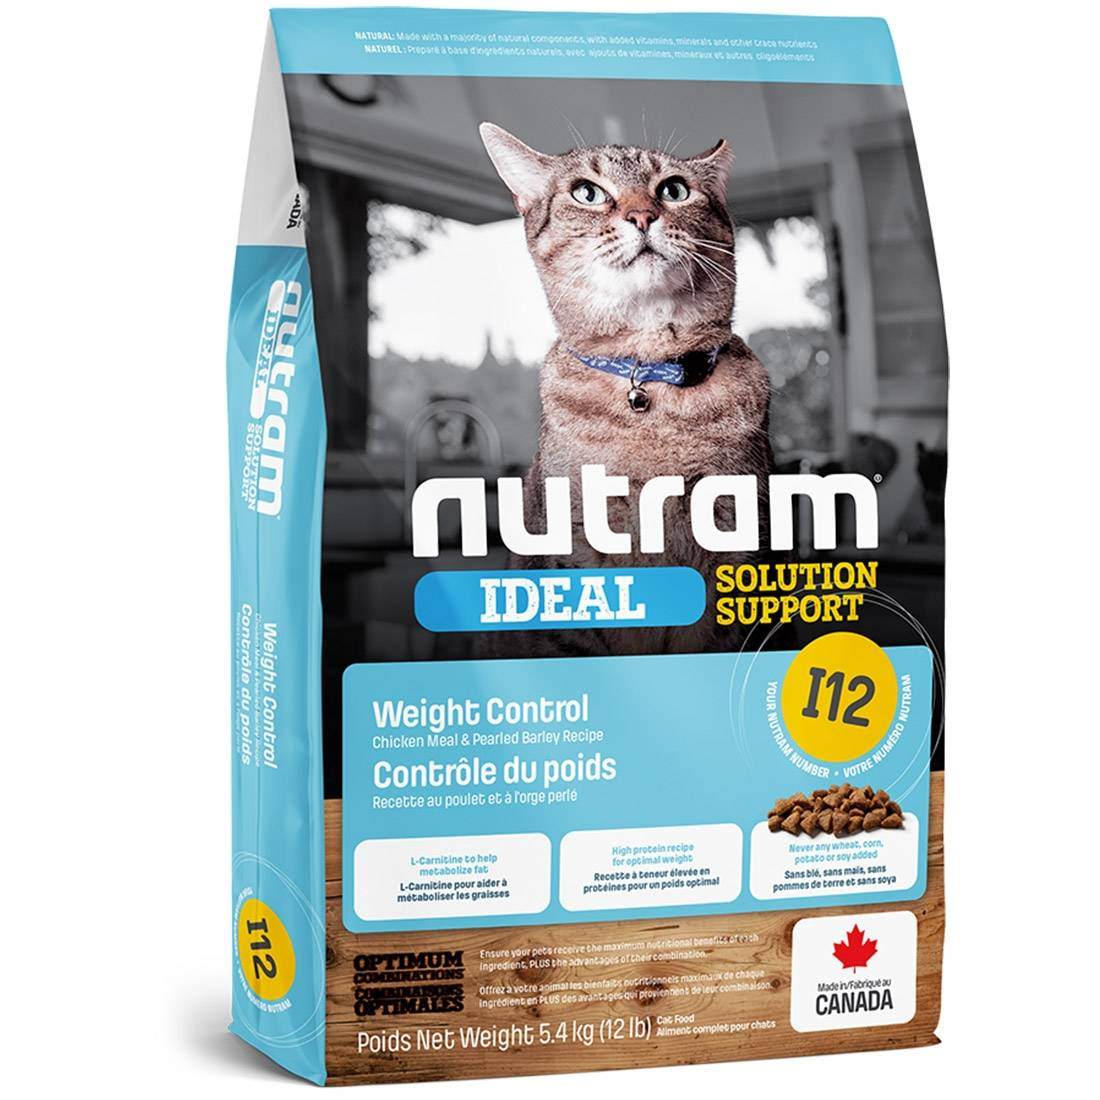 Nutram Croquettes chat Nutram Ideal Solution Support I12 Weight Control Cat Contenance : 1,13 kg